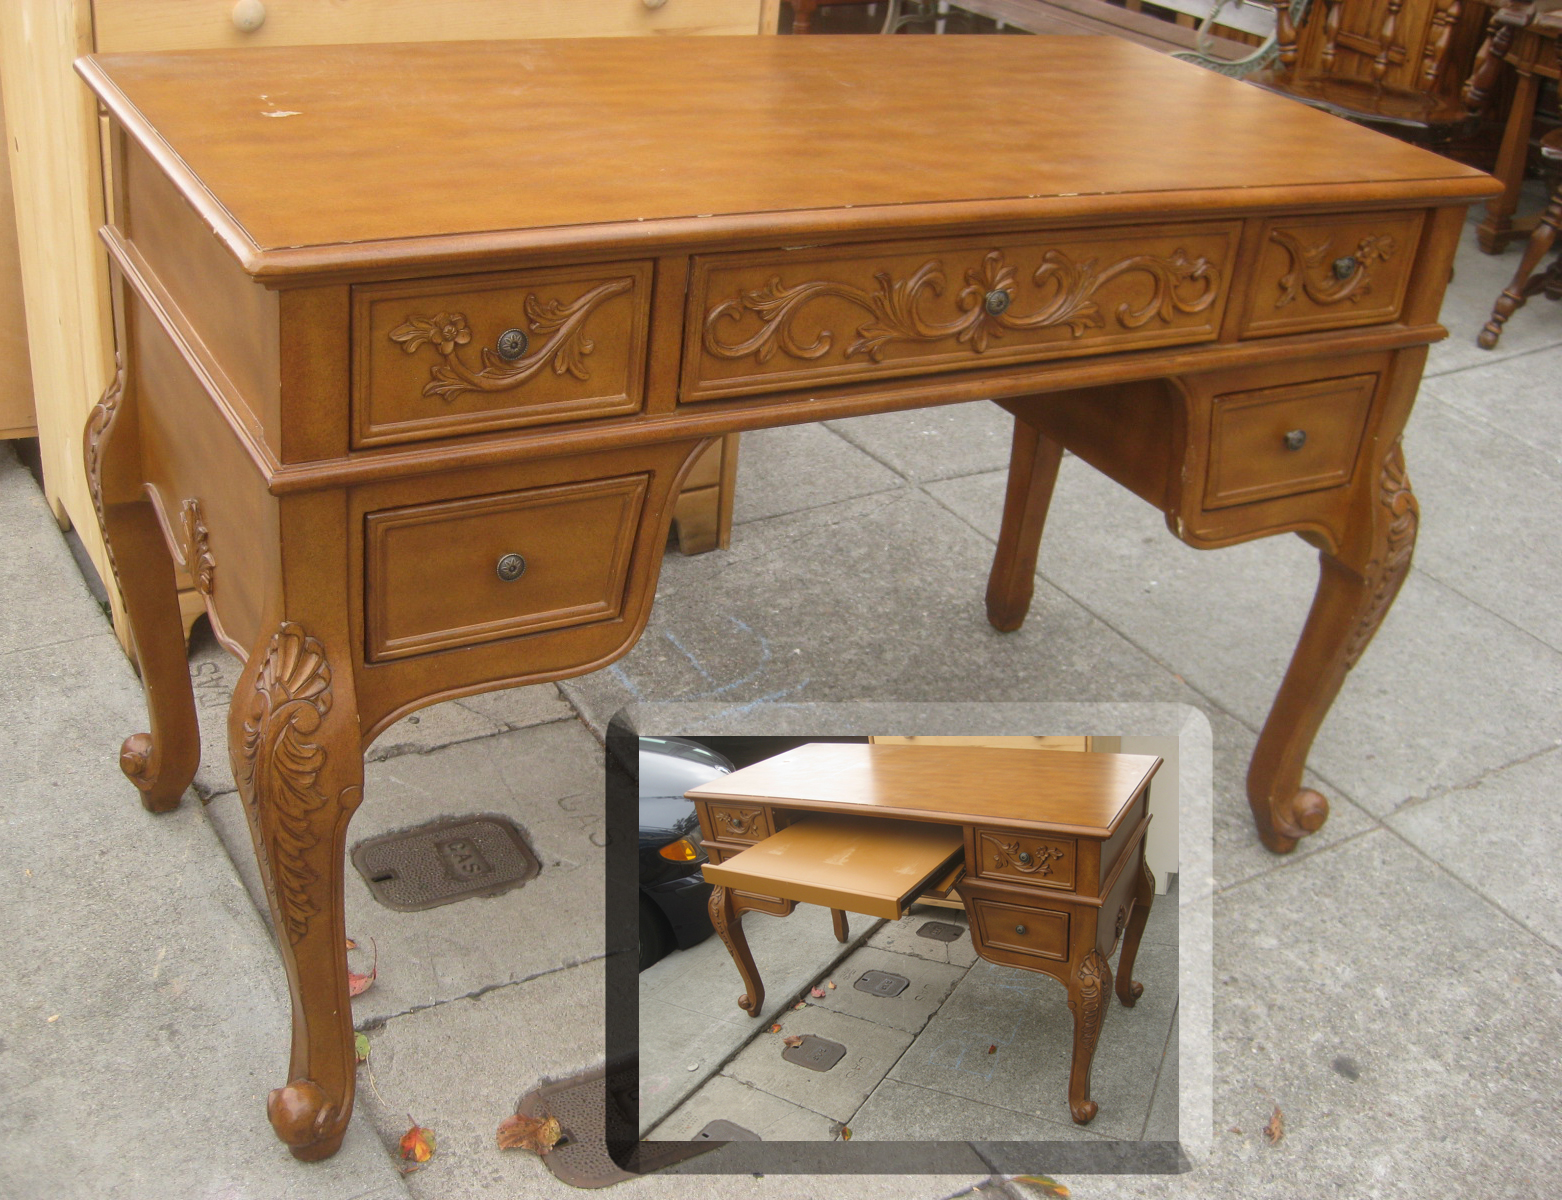 Fancy Desk Chairs For Dorm Rooms Uhuru Furniture And Collectibles Sold With